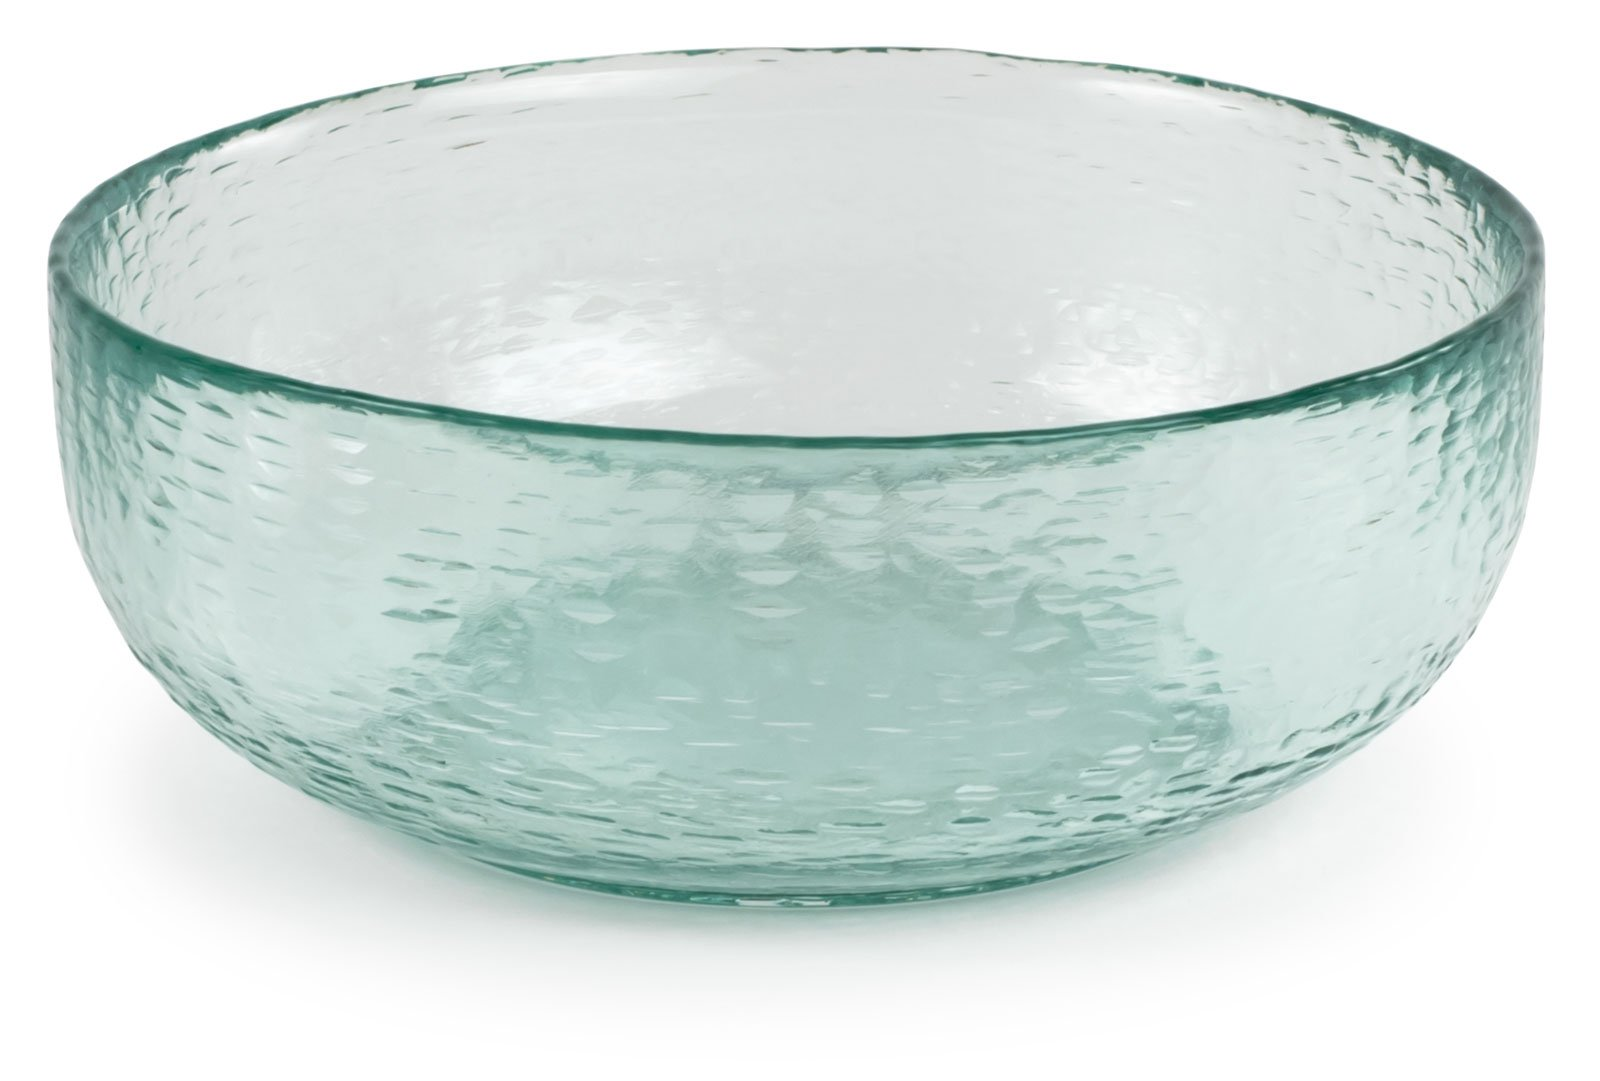 Spanish 100% Recycled Glass Small Incised Salsa Bowl, Set of 2 - 6.75''Dx2.5''H